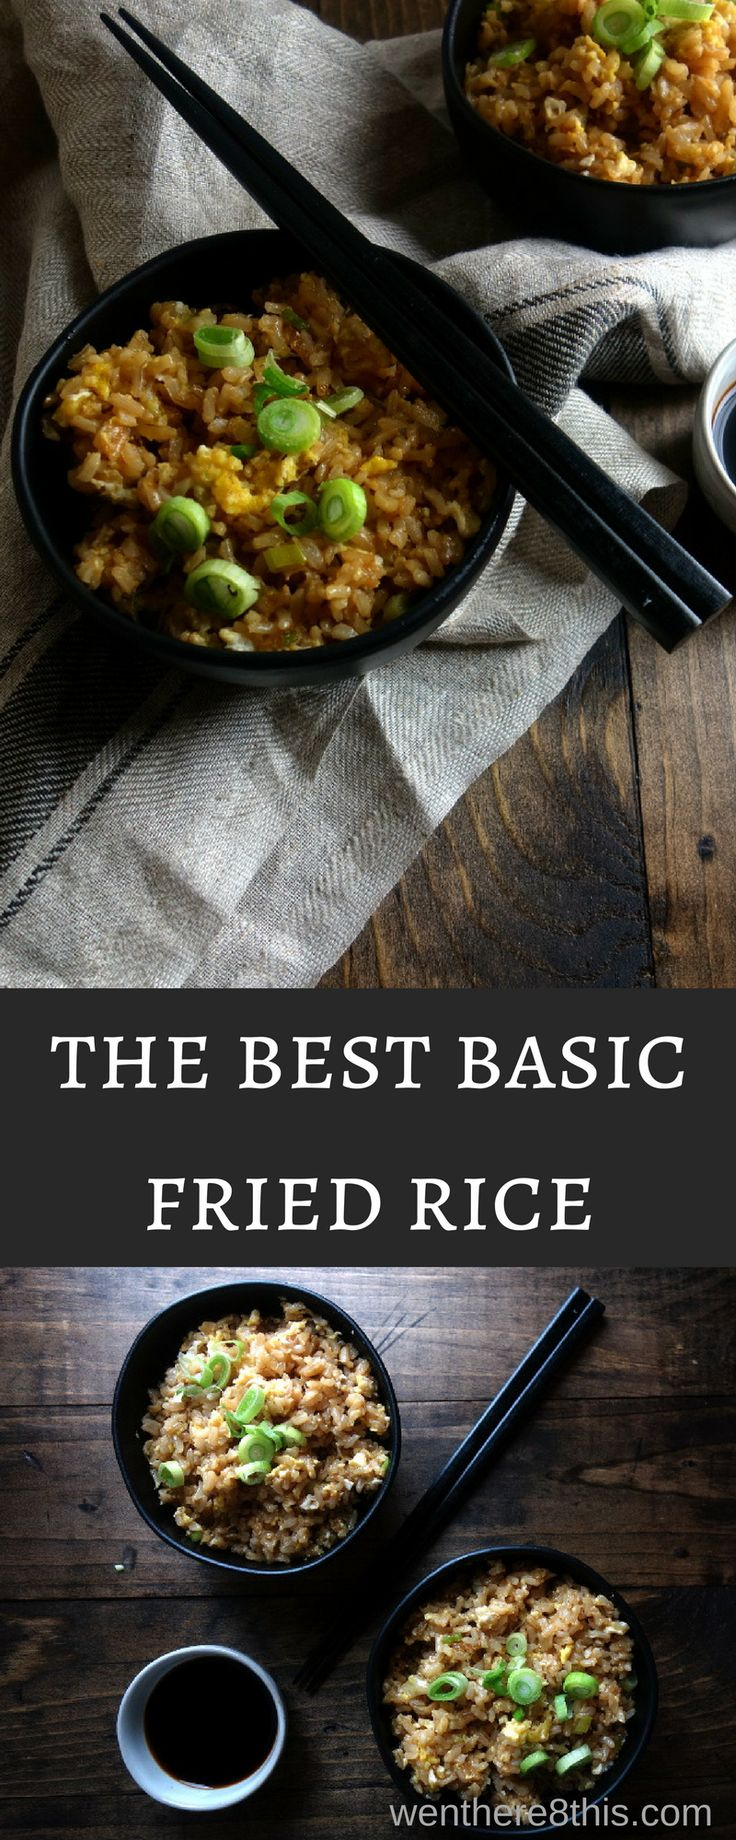 This basic fried rice with Chinese sausage is super easy to make and a perfect staple for all those homemade takeout Chinese dishes!  easy fried rice recipe | the best fried rice recipe | 10 minute fried rice | chinese fried rice | fried rice with egg | chinese sausage | better than takeout fried rice | best ever fried rice | easy rice recipes | Chinese takeout recipes | easy chinese fried rice via @Went Here 8 This